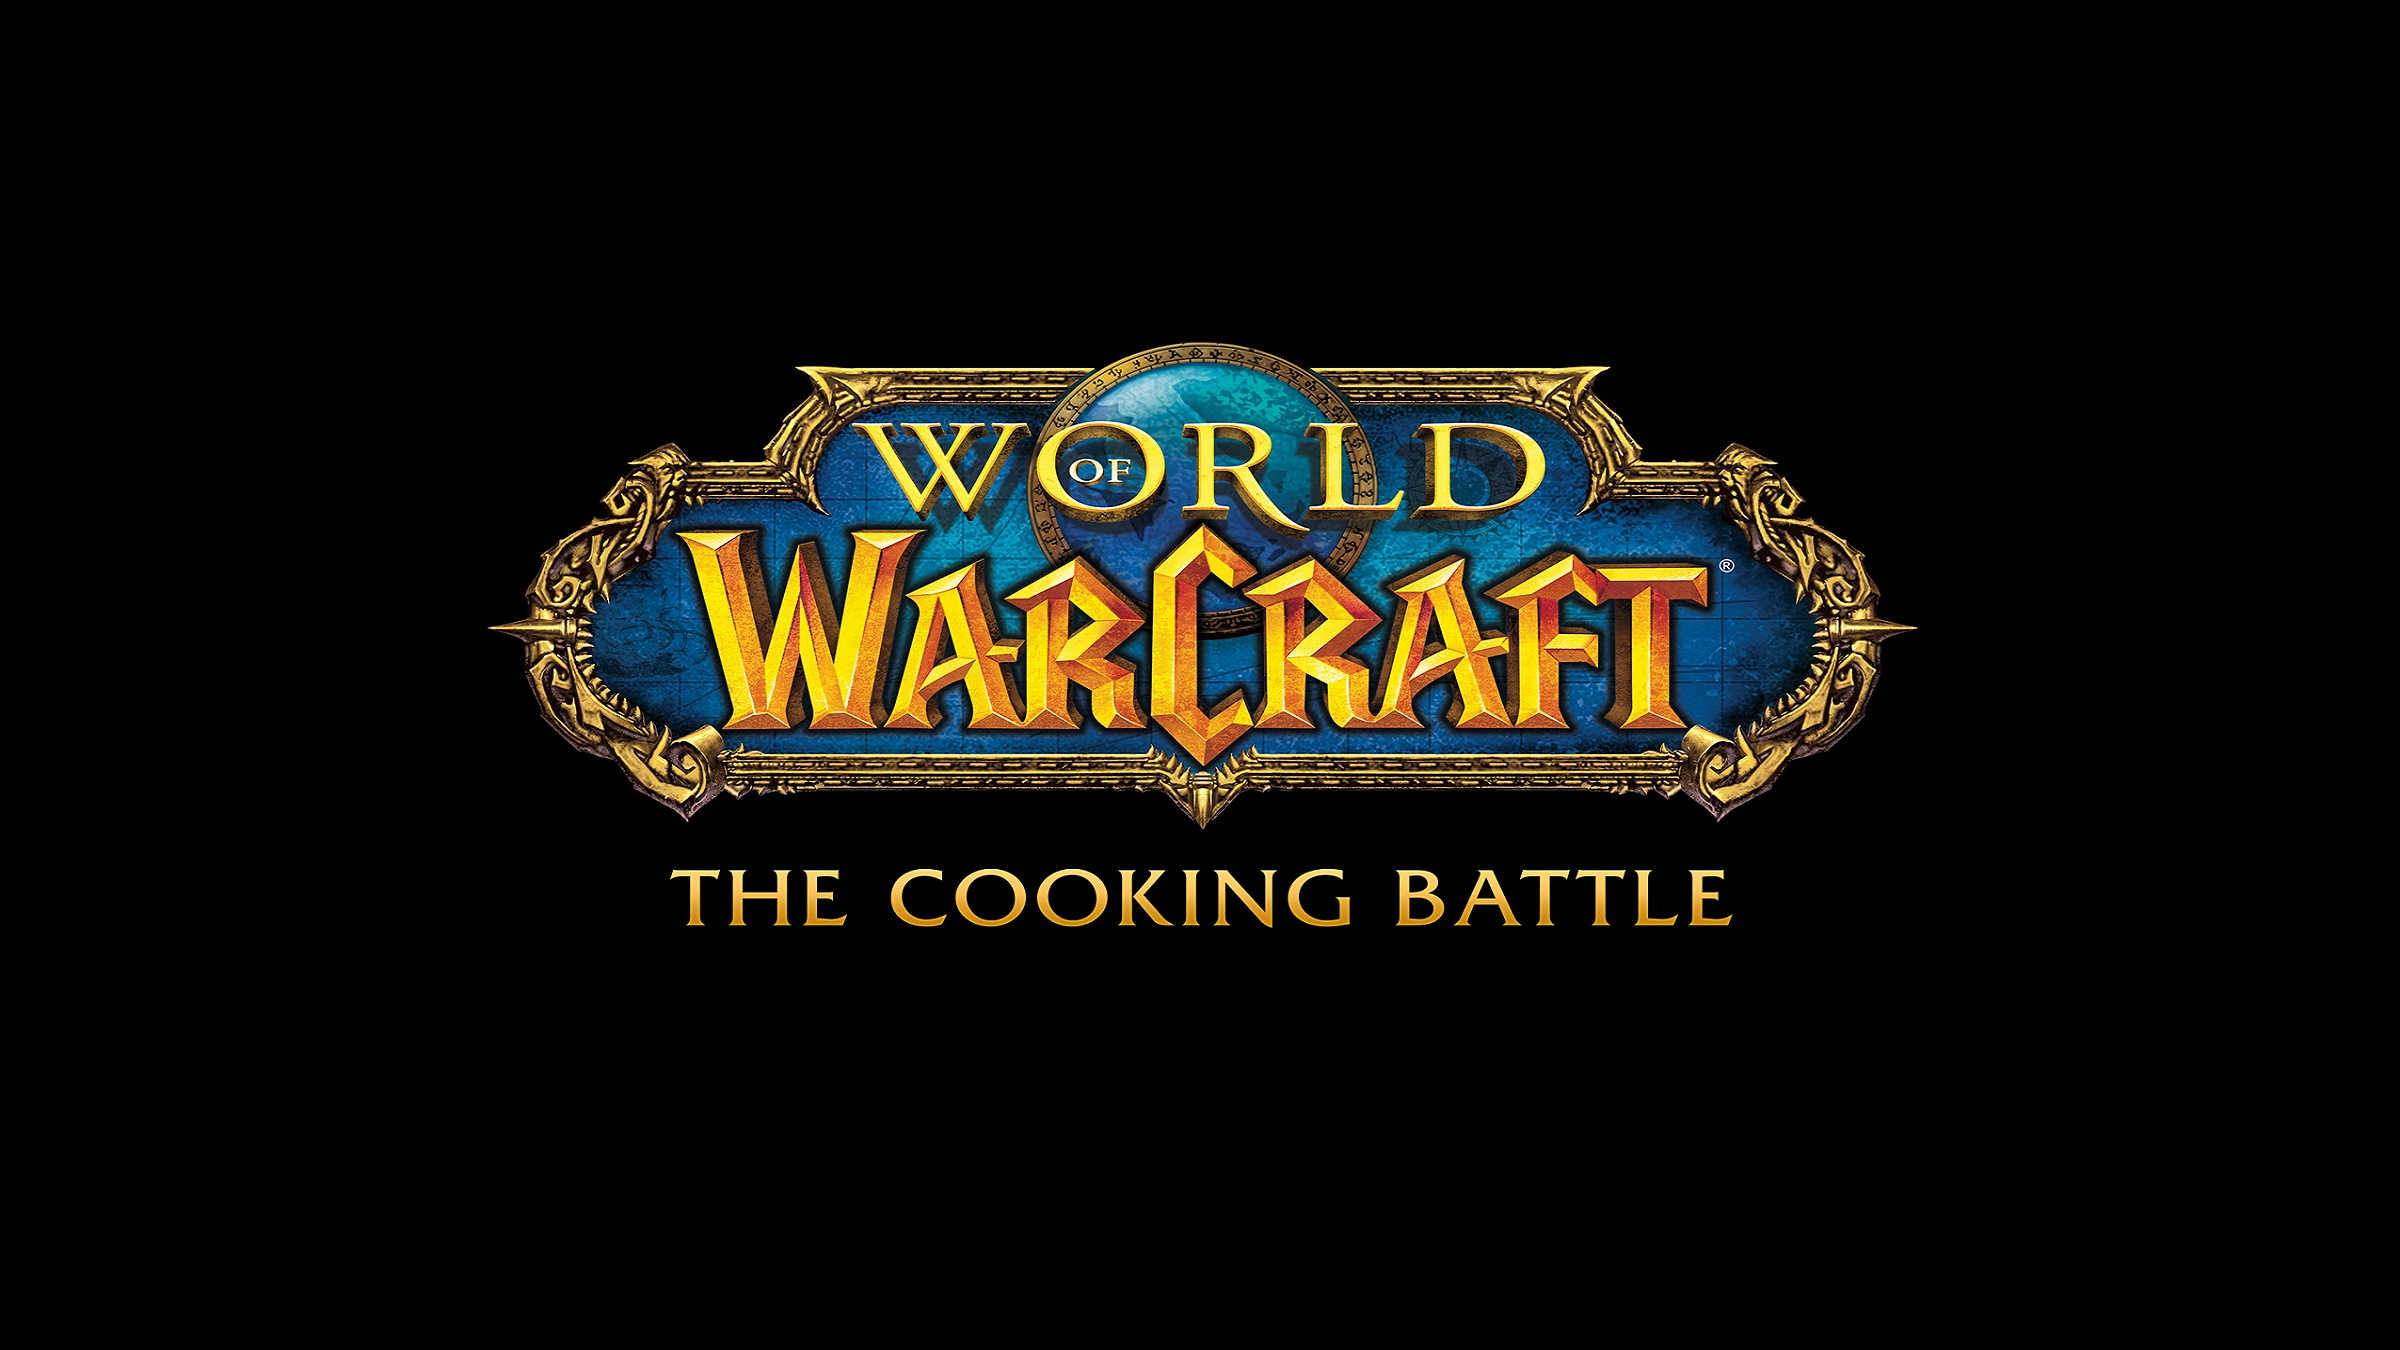 World of Warcraft: The Ultimate Cooking Battle